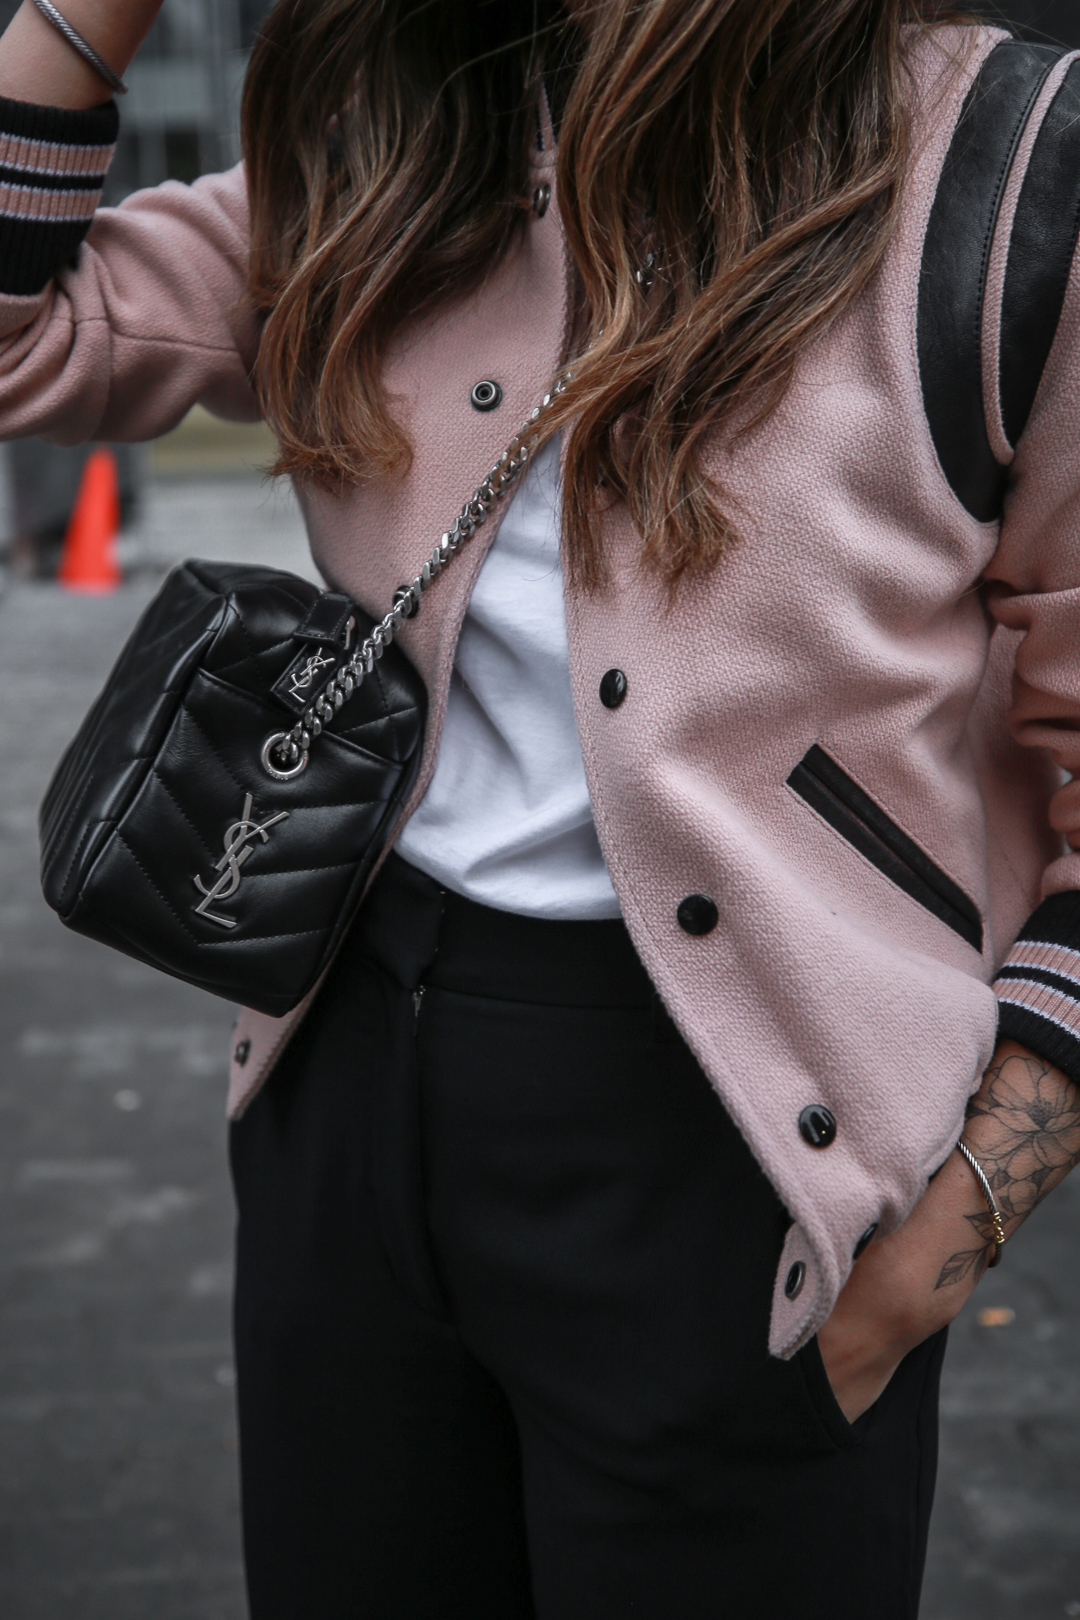 Nathalie Martin wearing Saint Laurent pink Teddy Jacket, YSL Lou Lou small bowling bag, white canvas sneakers, Aritzia Jallade Pant, street style, woahstyle.com_4076-2.jpg